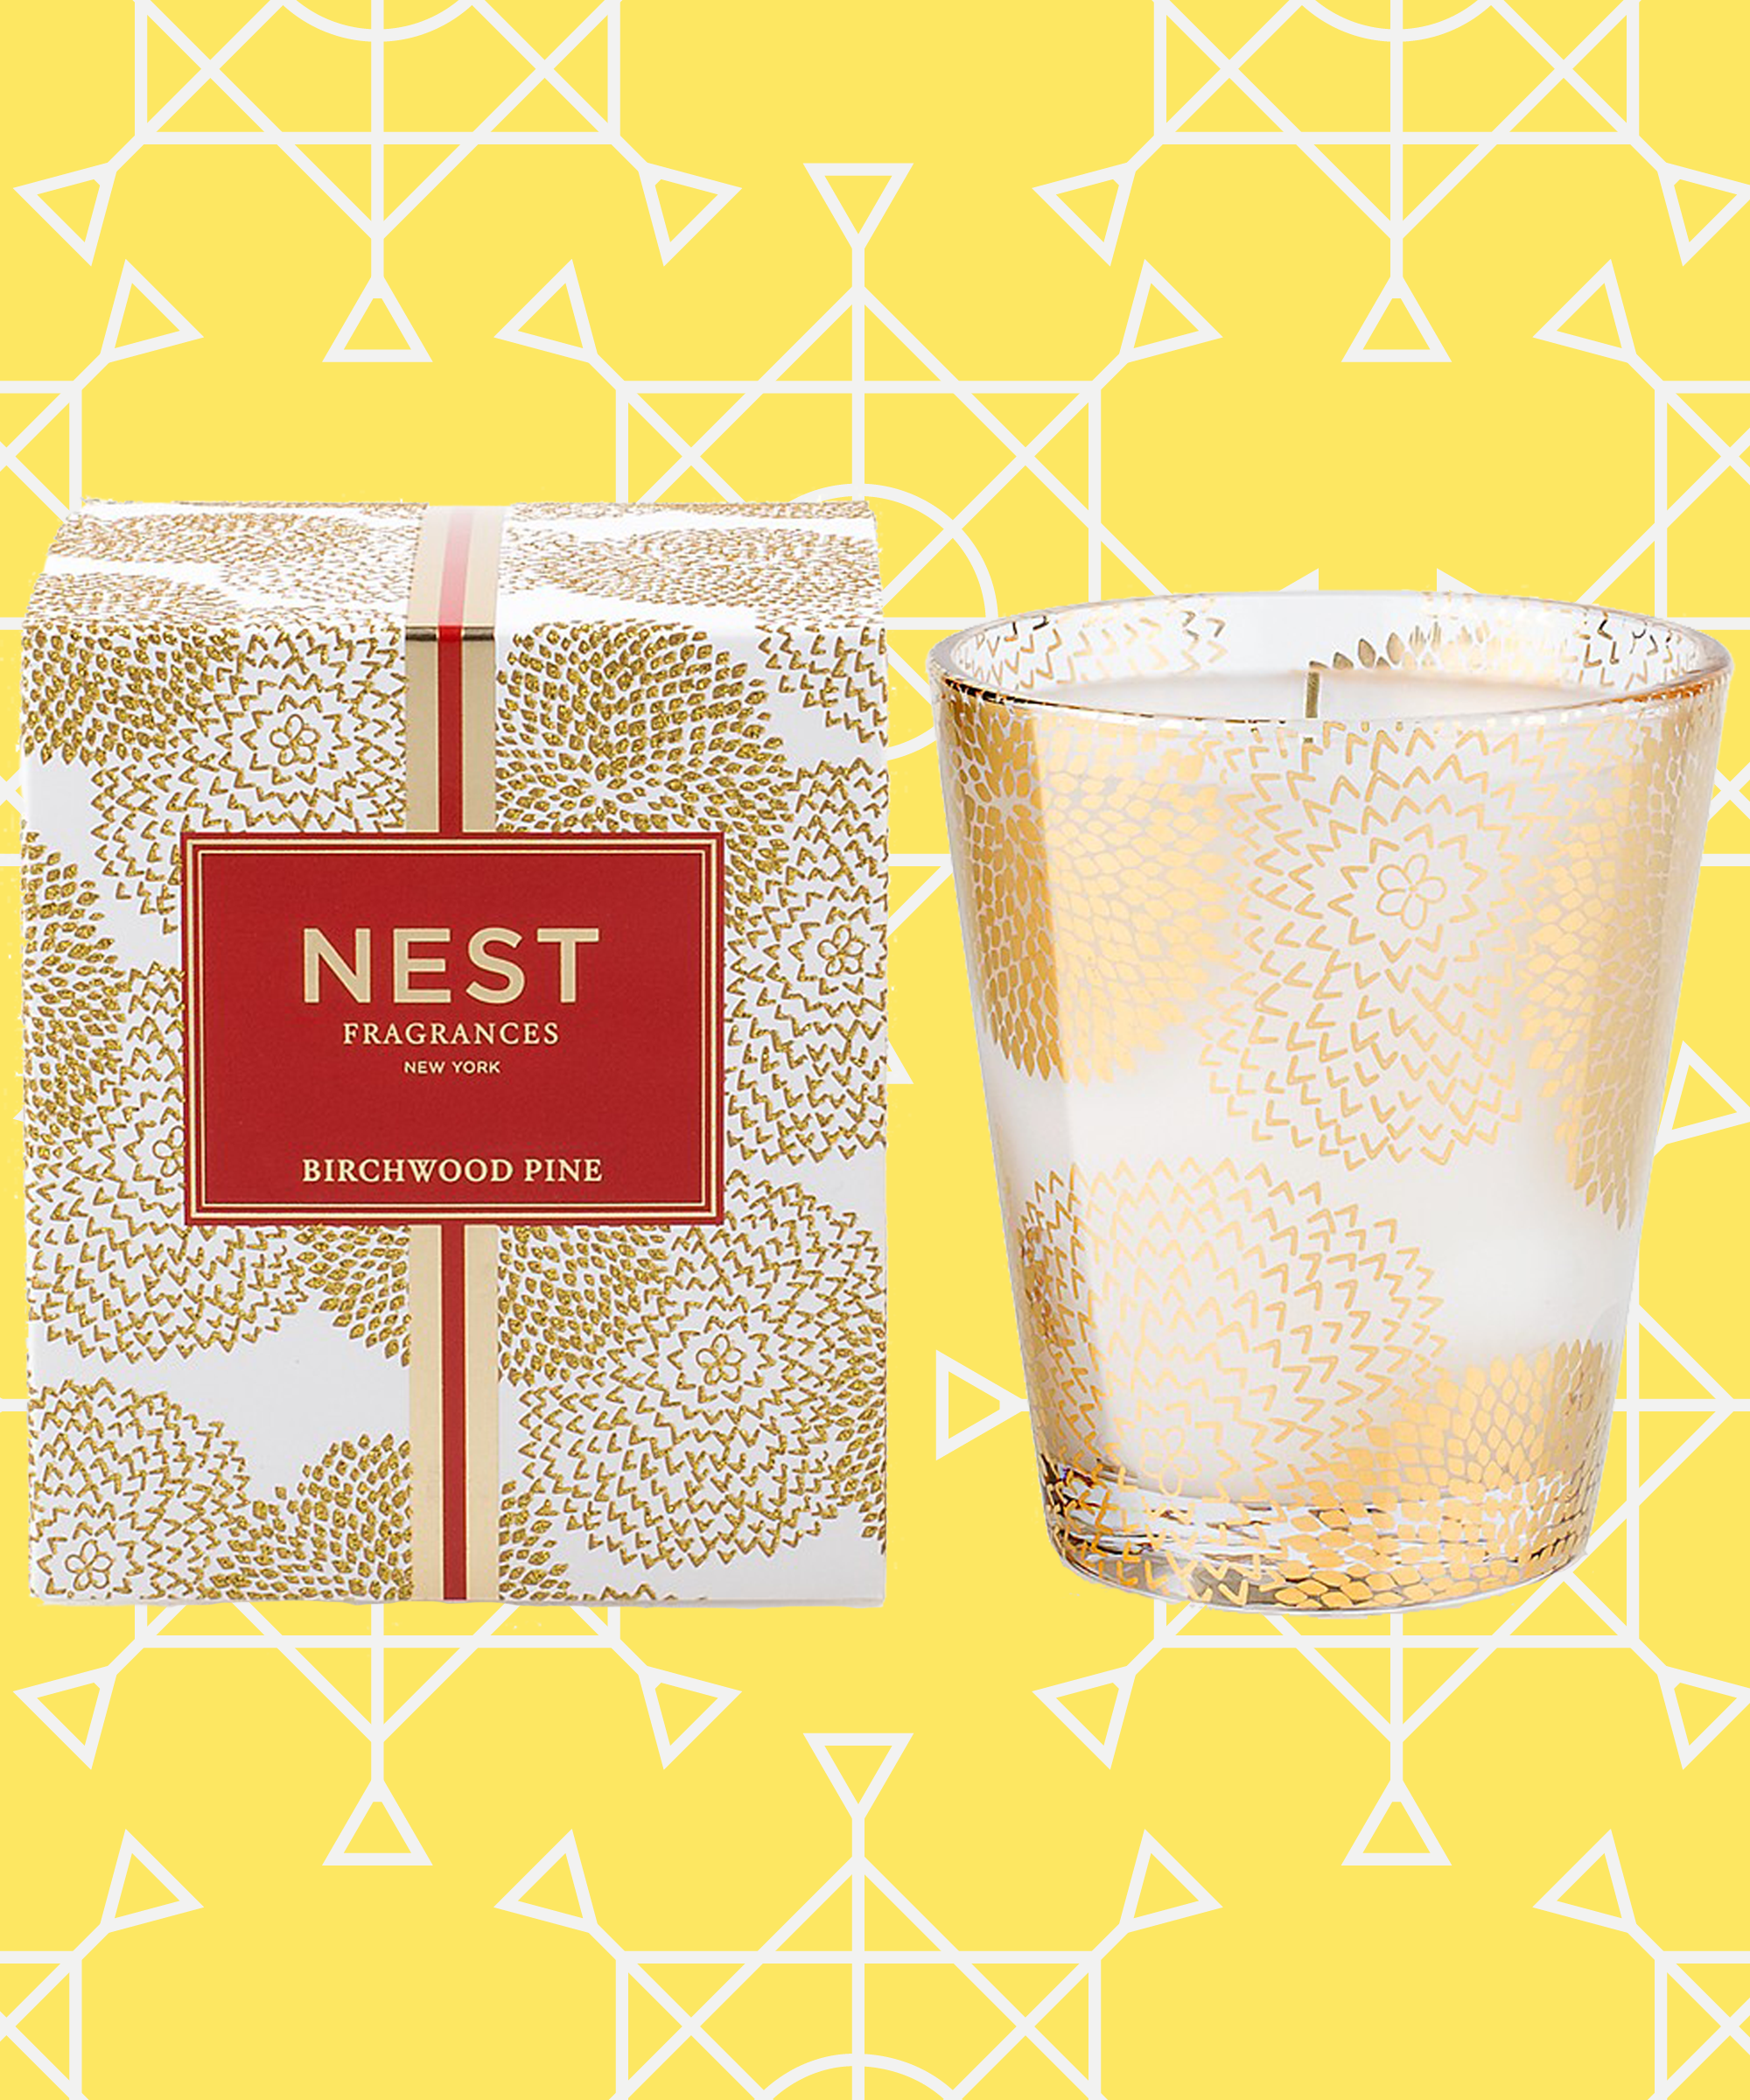 Nest Birchwood Pine Candle Review | Why this is the best holiday candle on the market. #refinery29 http://www.refinery29.com/nest-birchwood-pine-candle-review